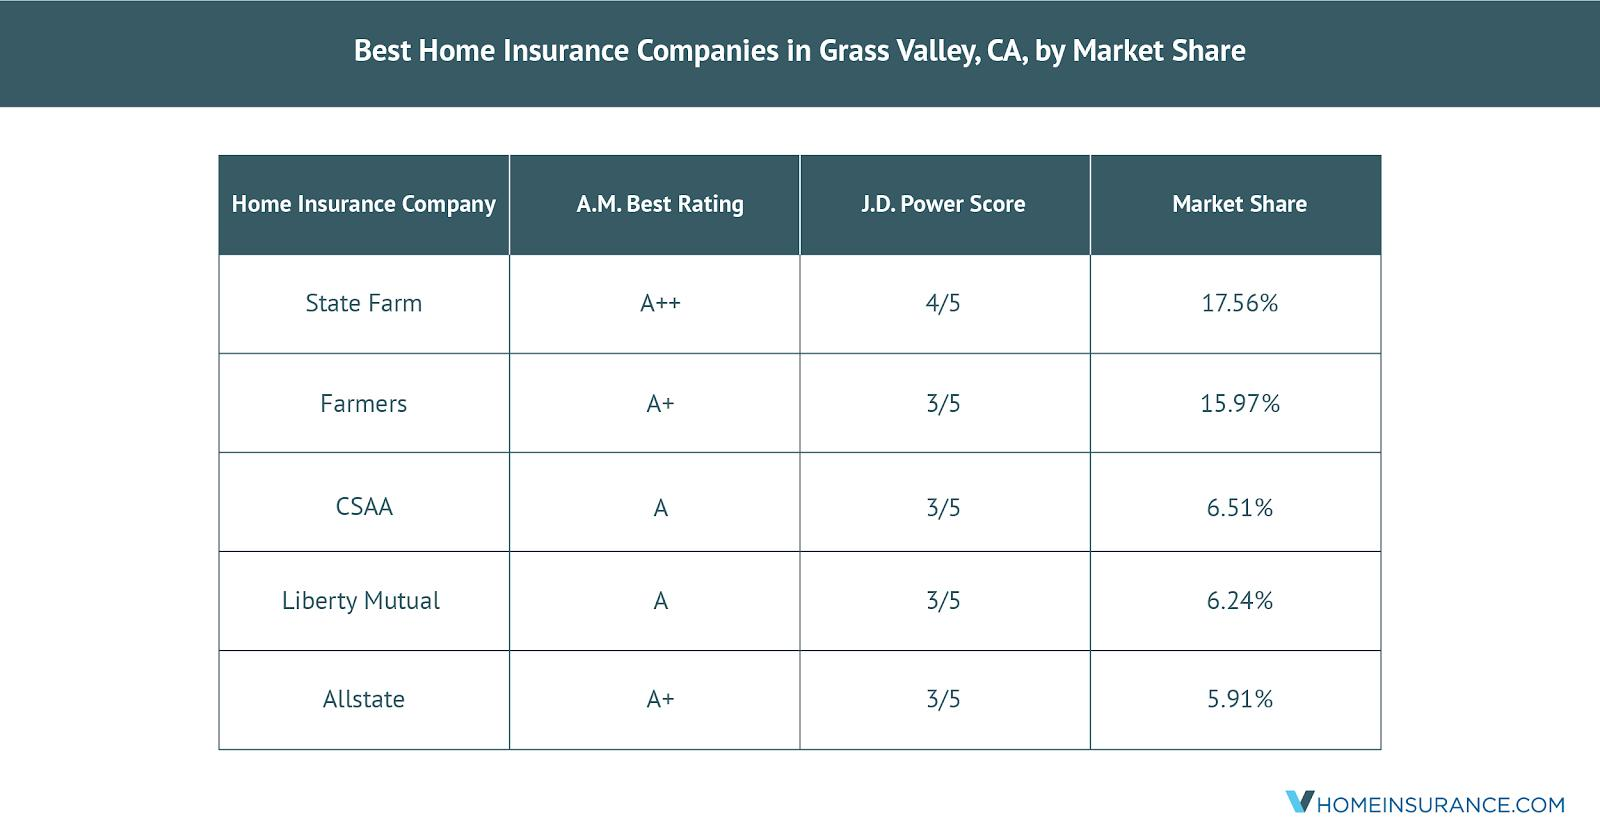 The_Grass_Valley_CA_Best_Home_Insurance_Companies